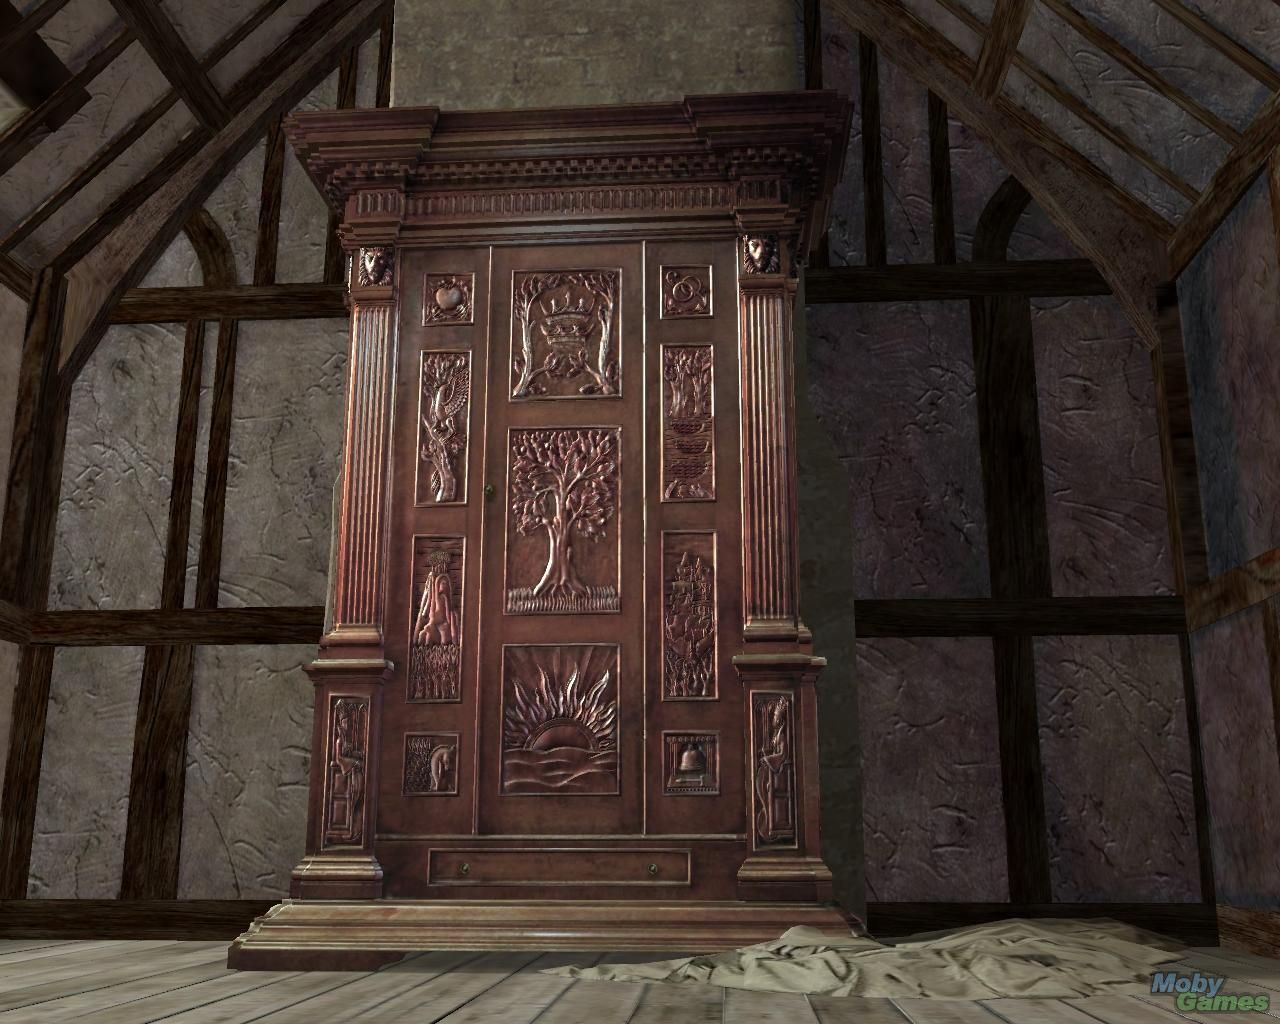 The wardrobe is the best part! I'm going to put it in front of a doorway without trim and have a whole in the back so you can go into the lamp post room through the wardrobe =D yay!